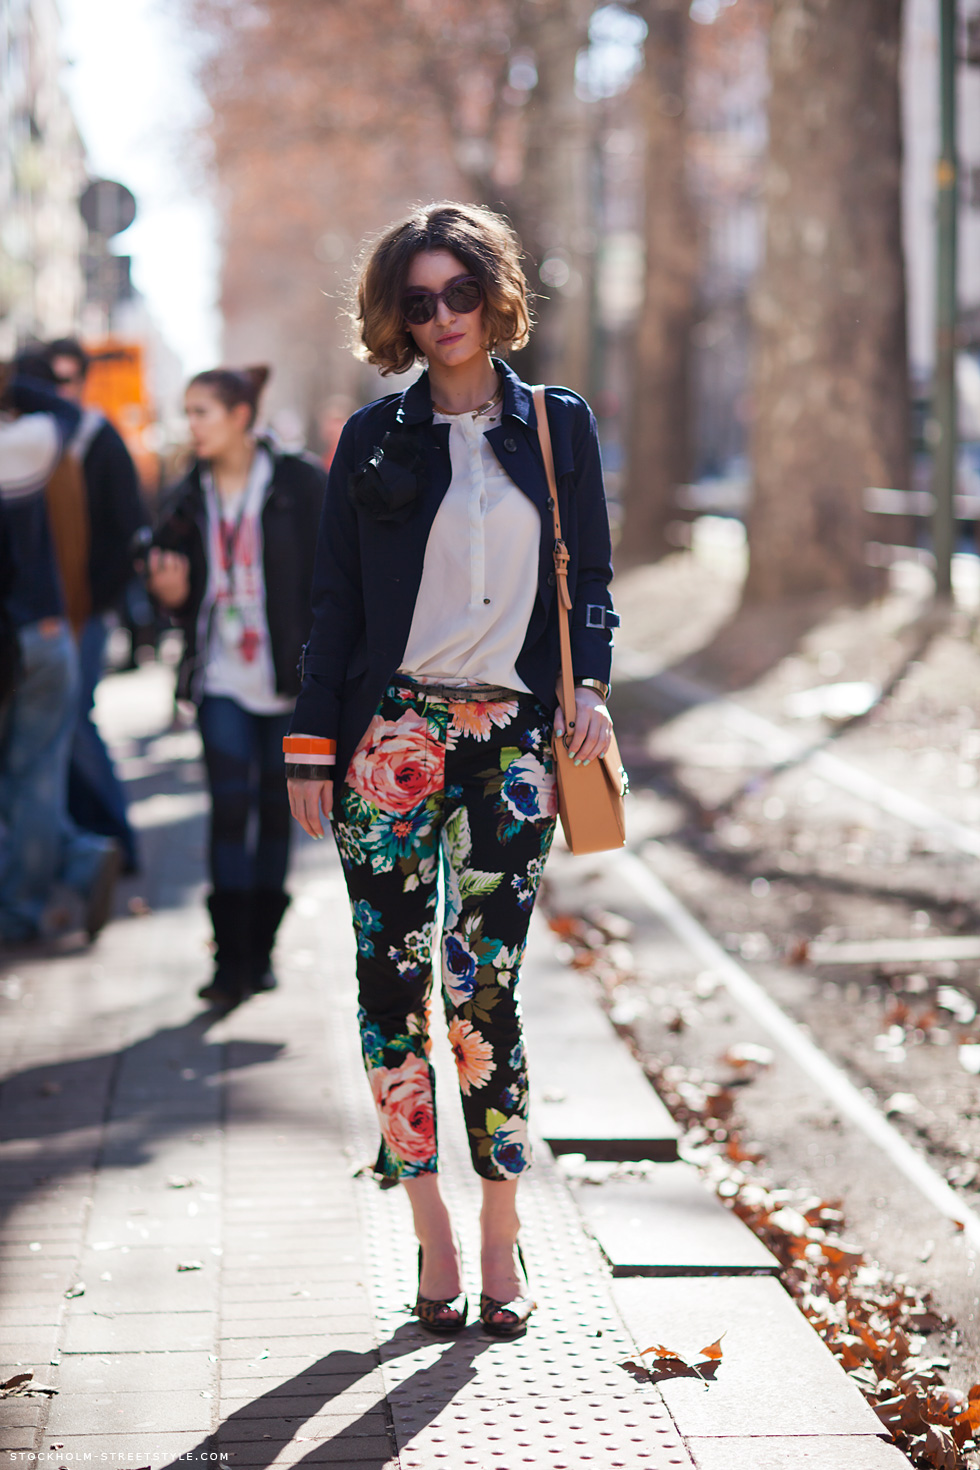 Colette is wearing a blue shirt, white tee and floral pants and shoes Via Stockholm Street Style